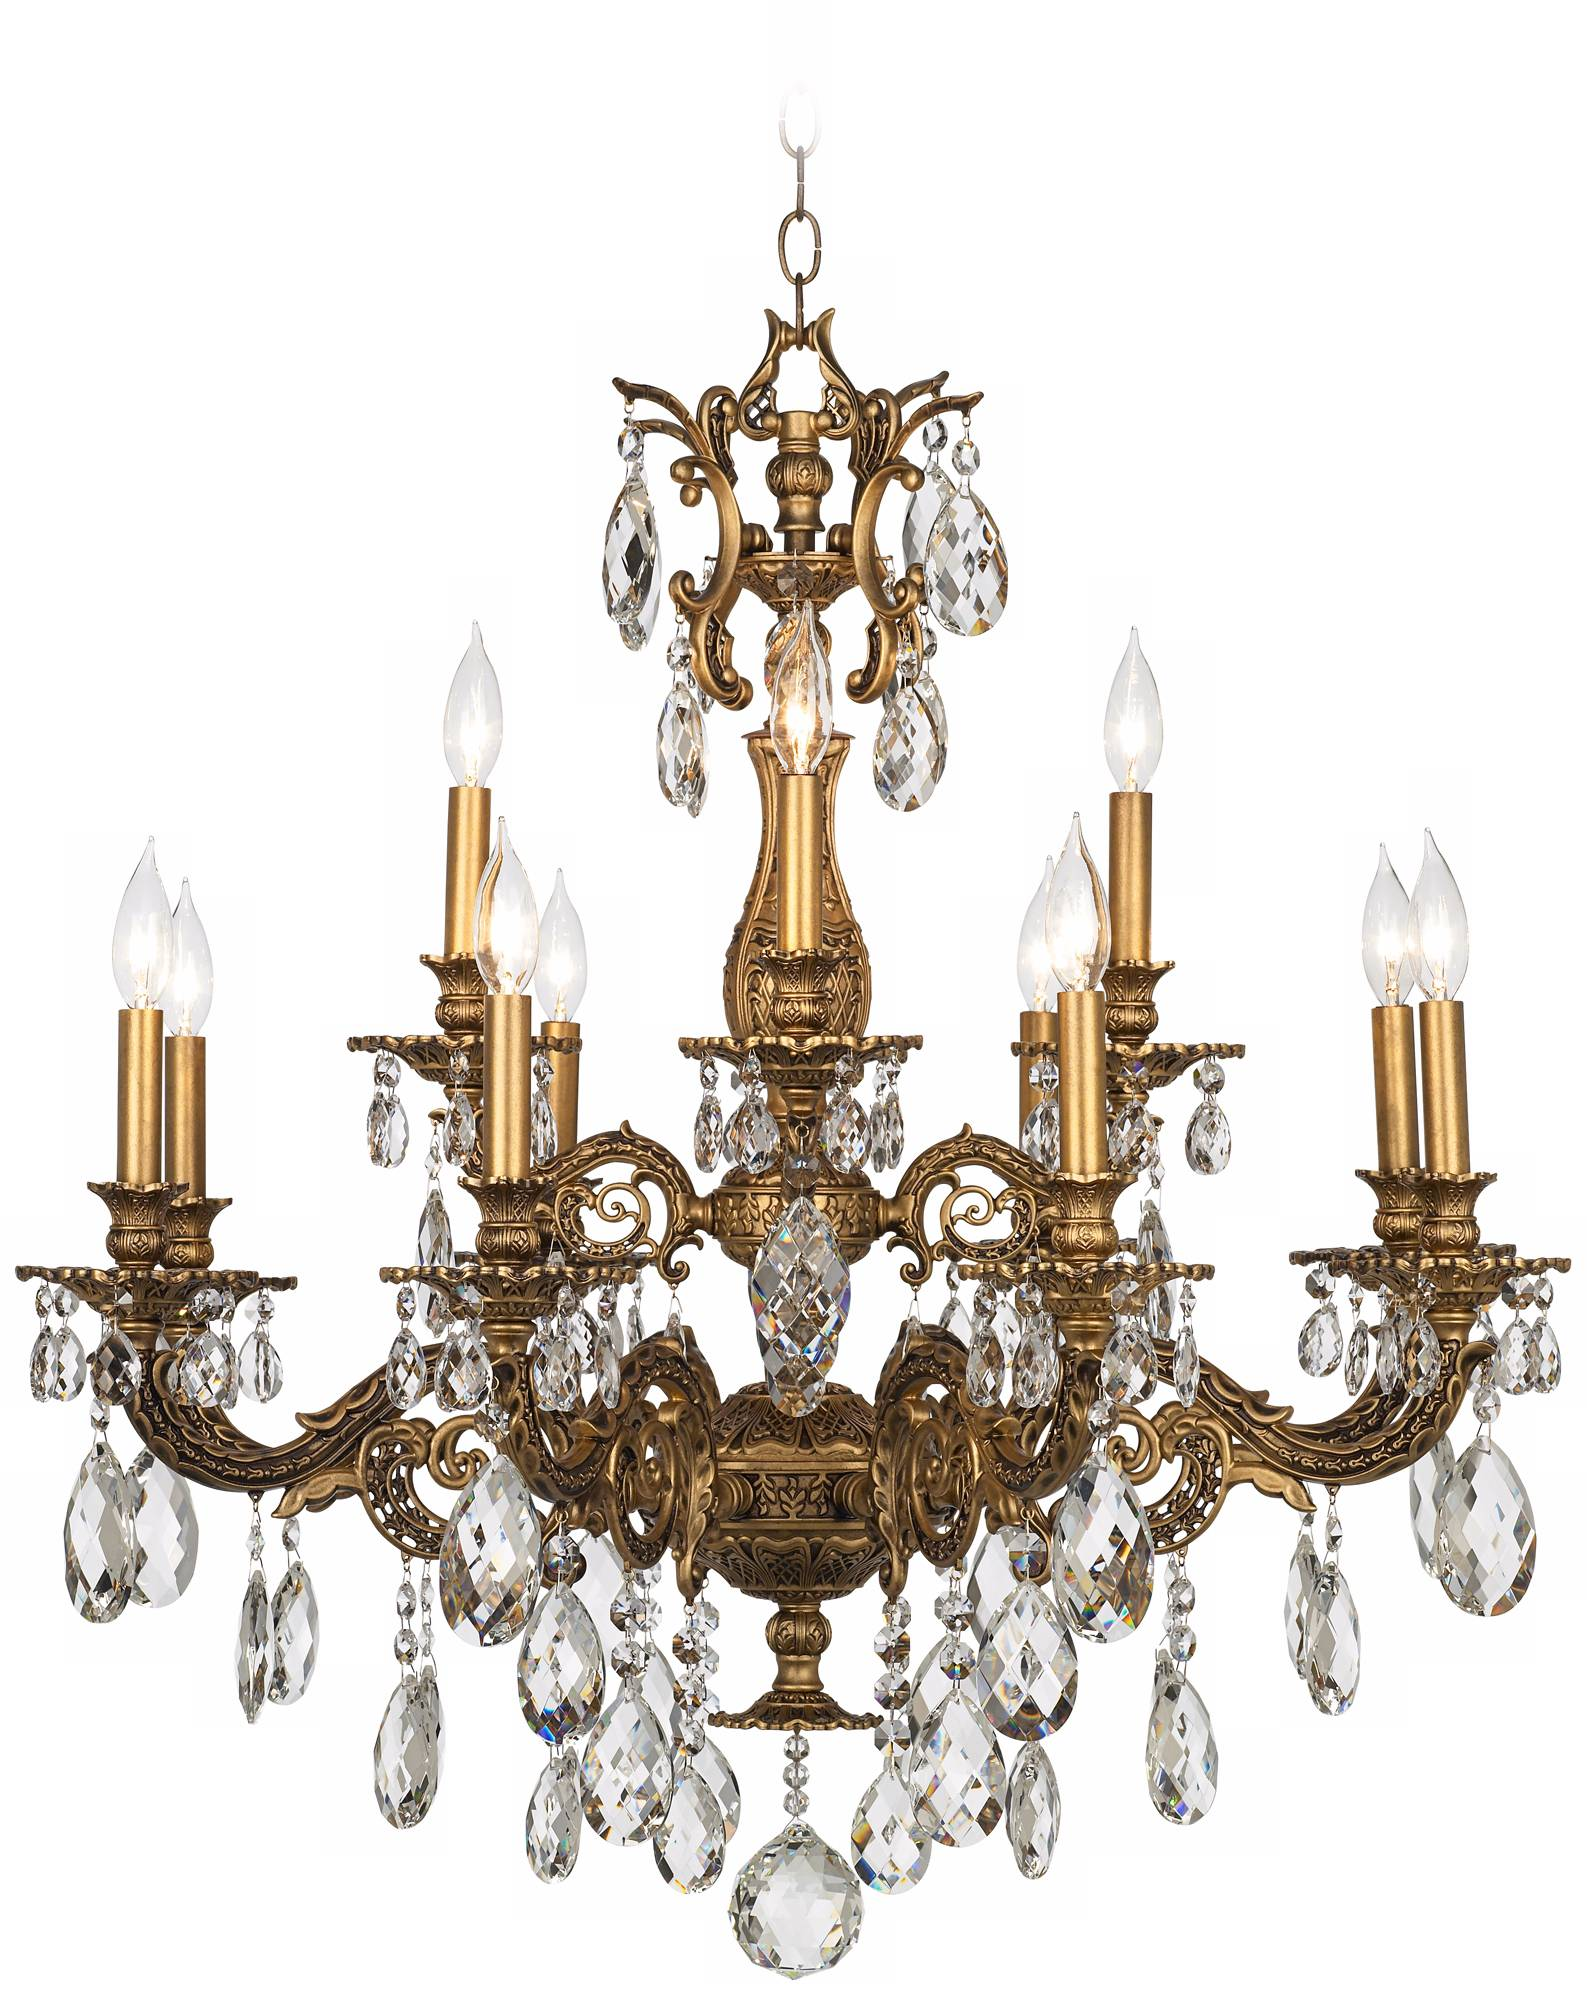 Magnificence Satin Nickel 14 1 4 Quot Wide Crystal Chandelier